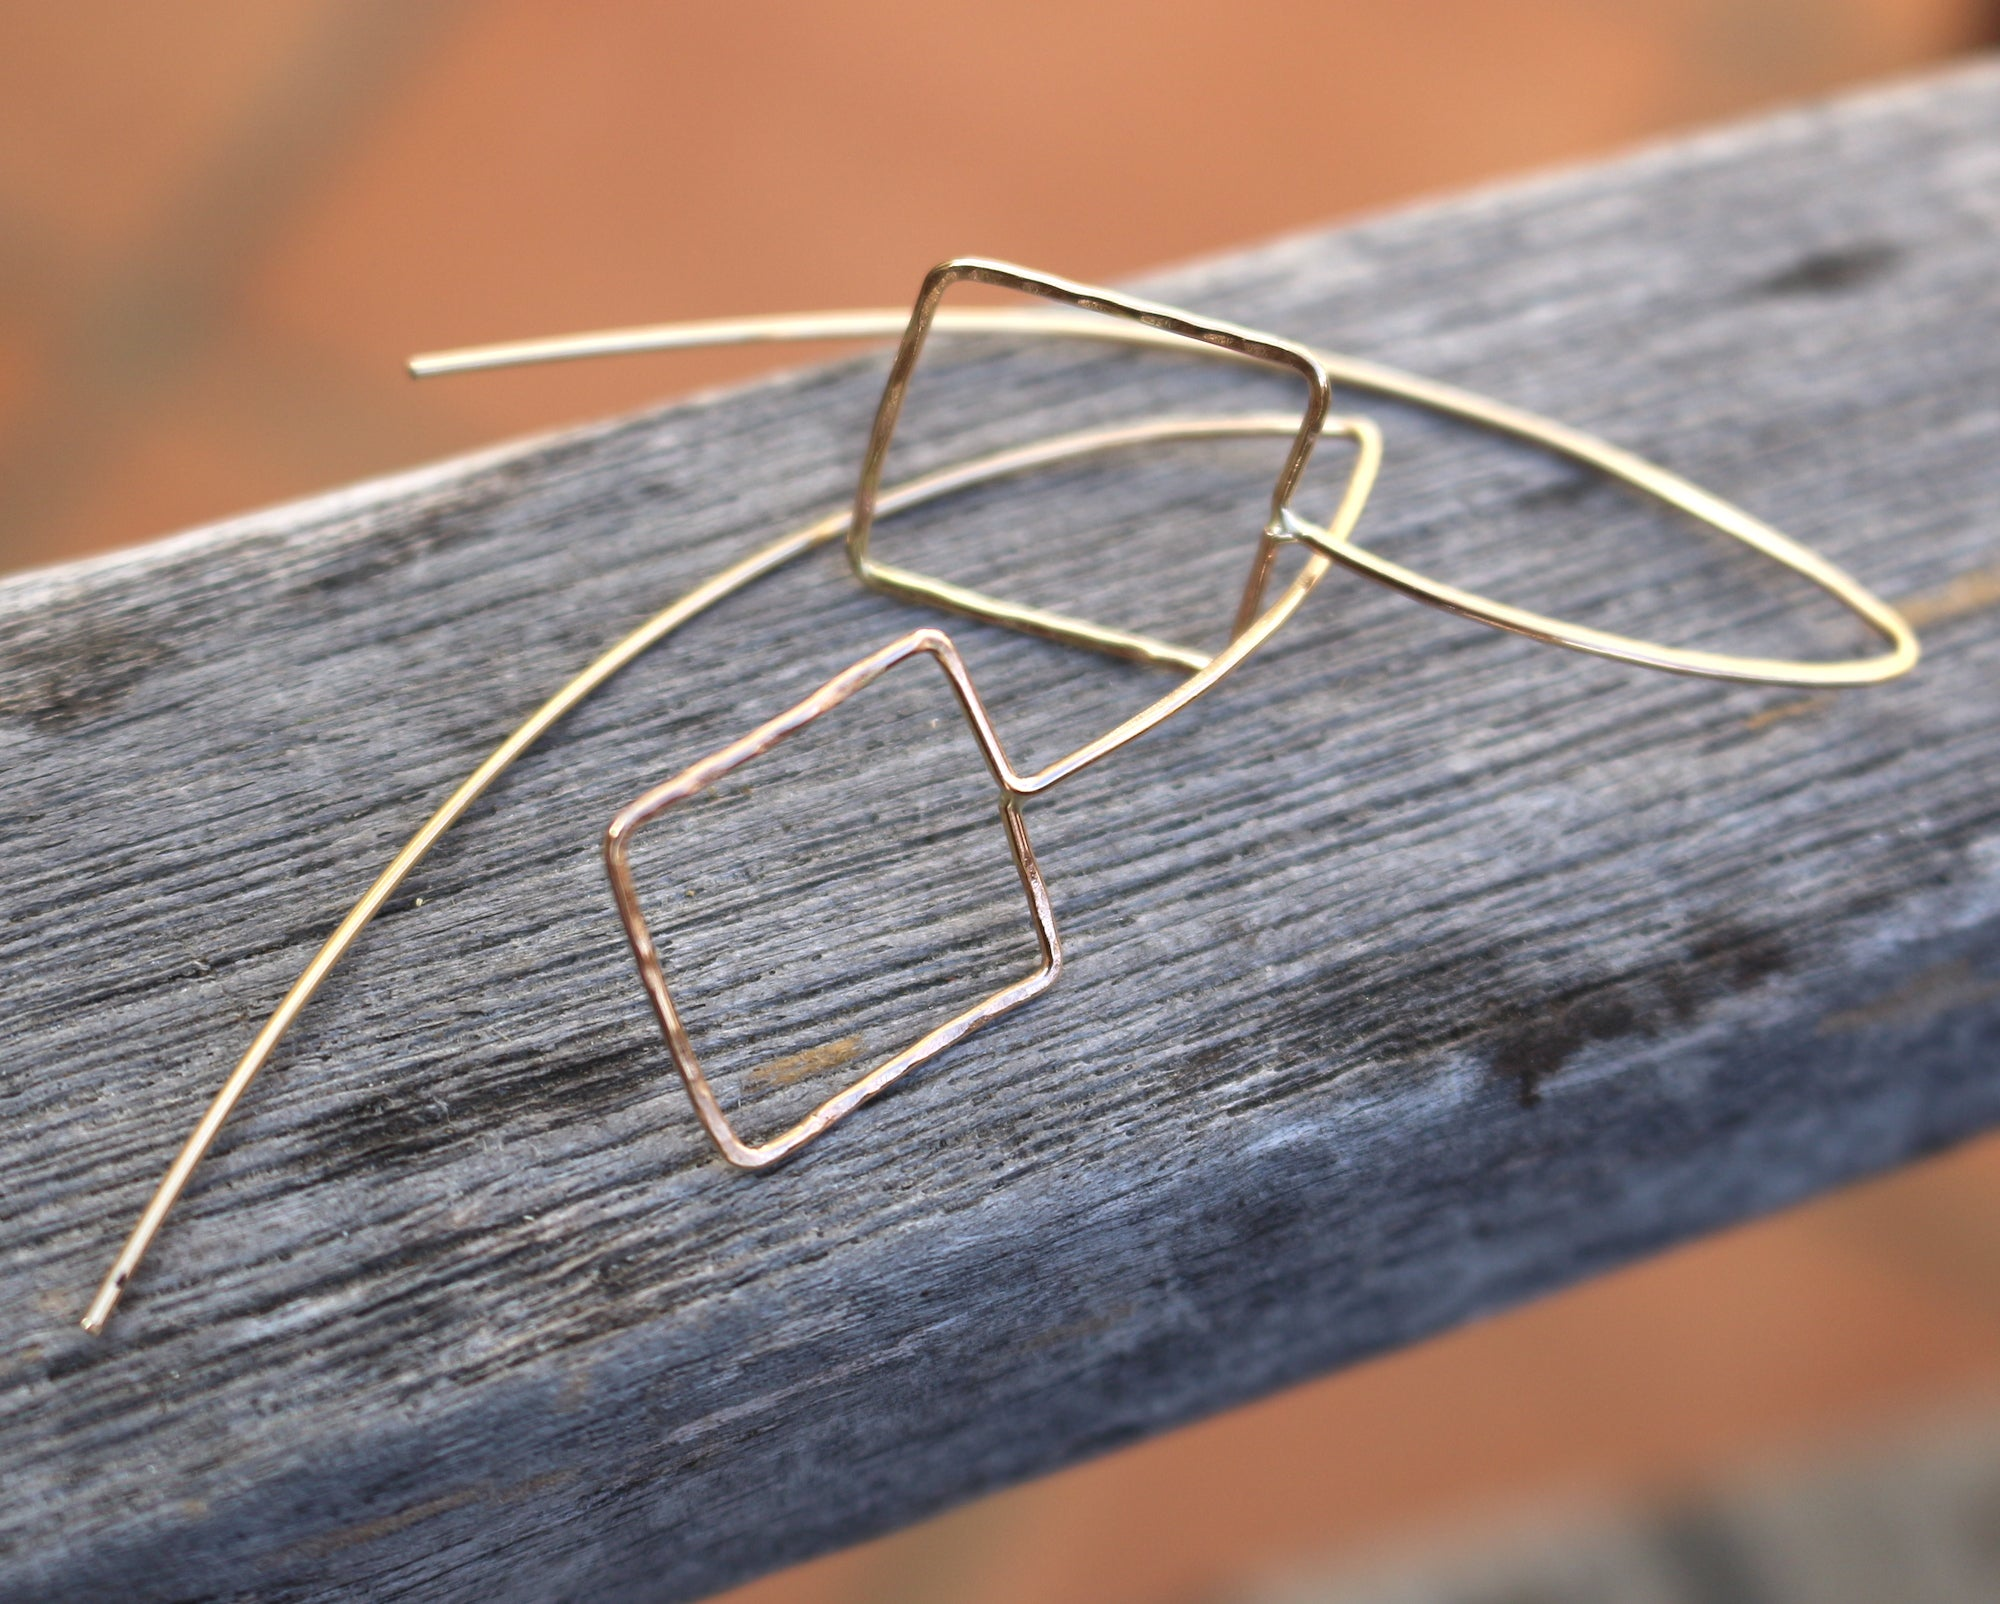 Square gold filled earrings